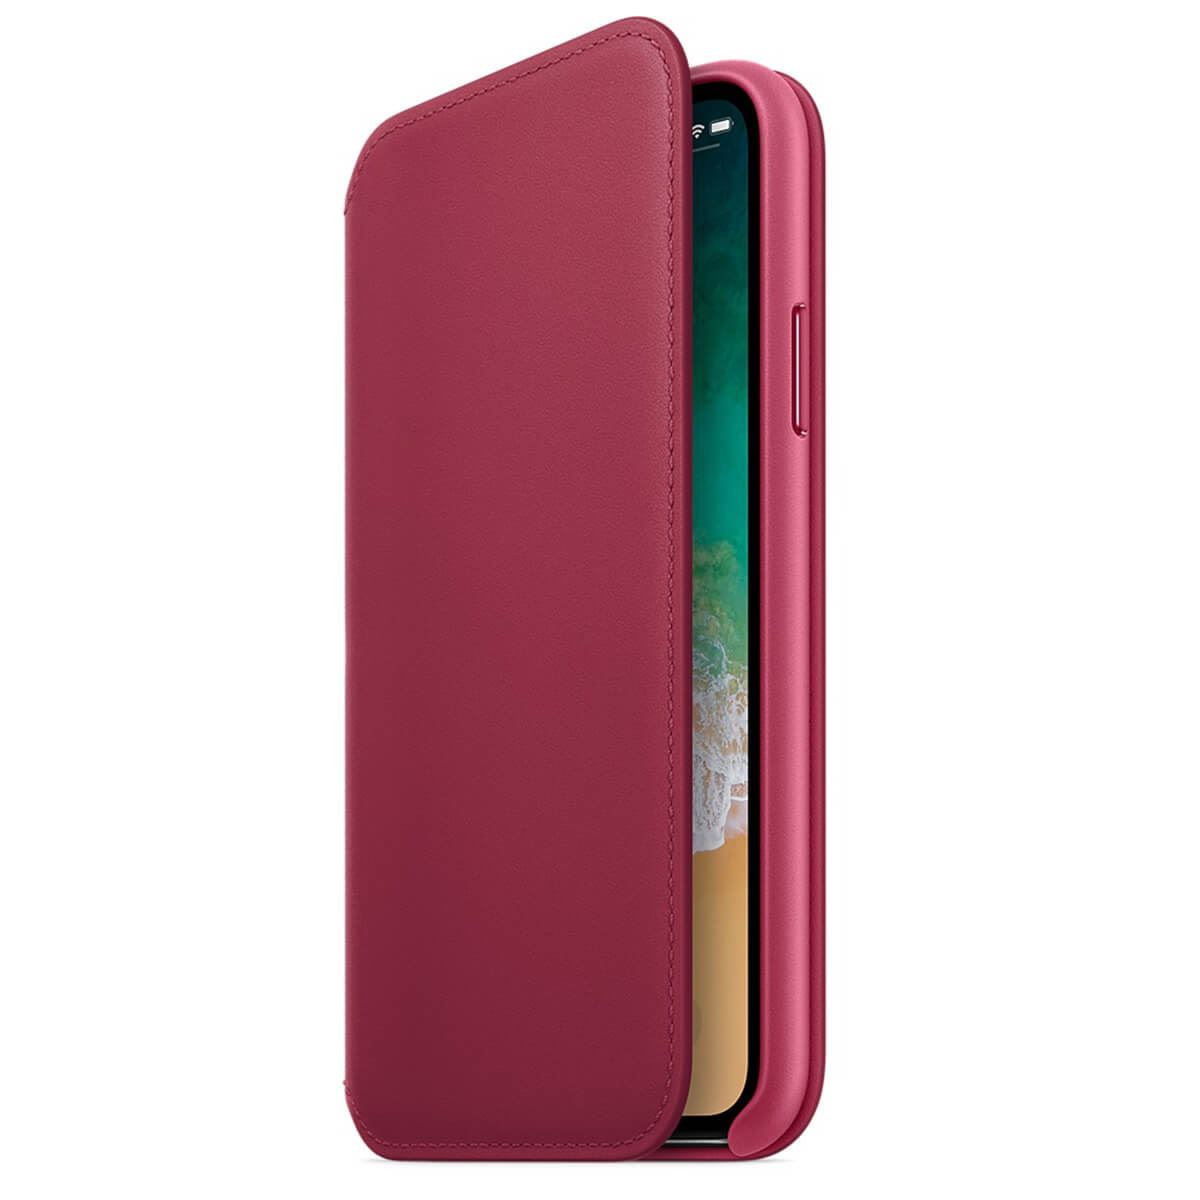 Genuine-Leather-Folio-Flip-Wallet-Case-Cover-For-Apple-iPhone-X-8-7-6S-6-Plus thumbnail 46